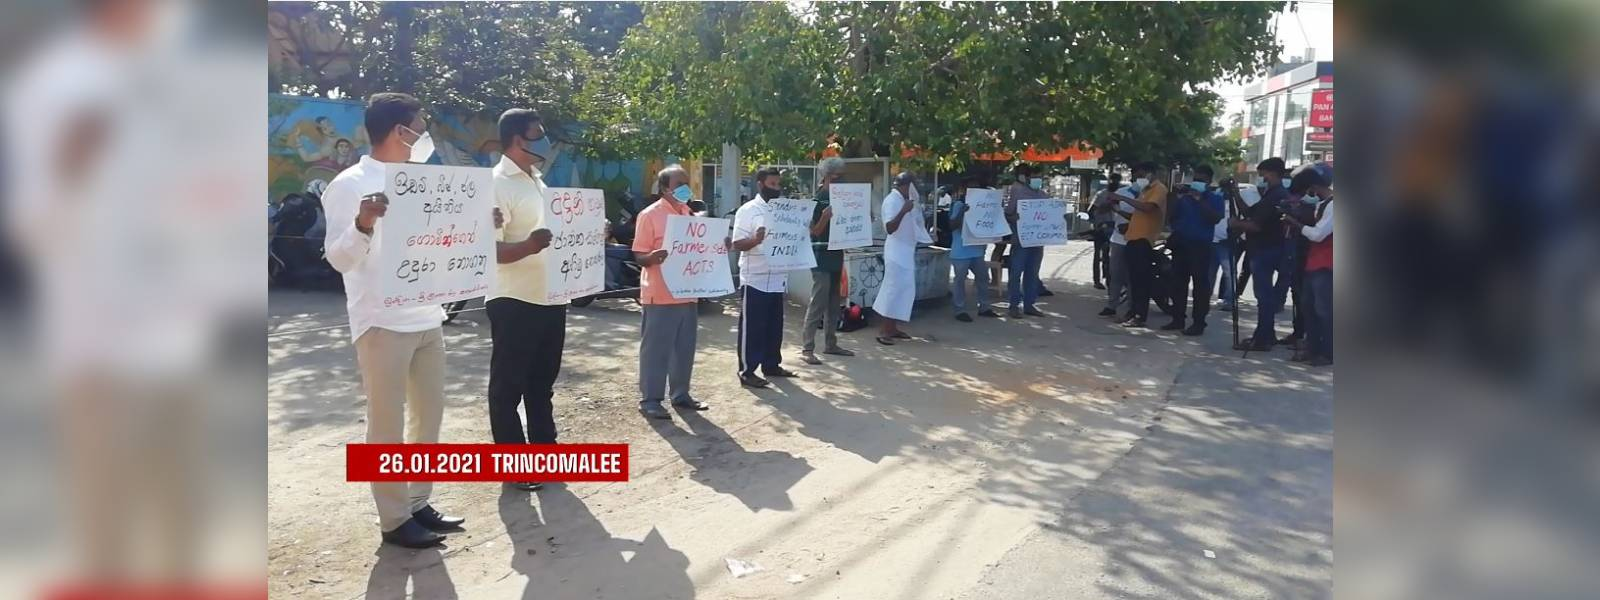 Protests in Sri Lanka in support of Indian farmers